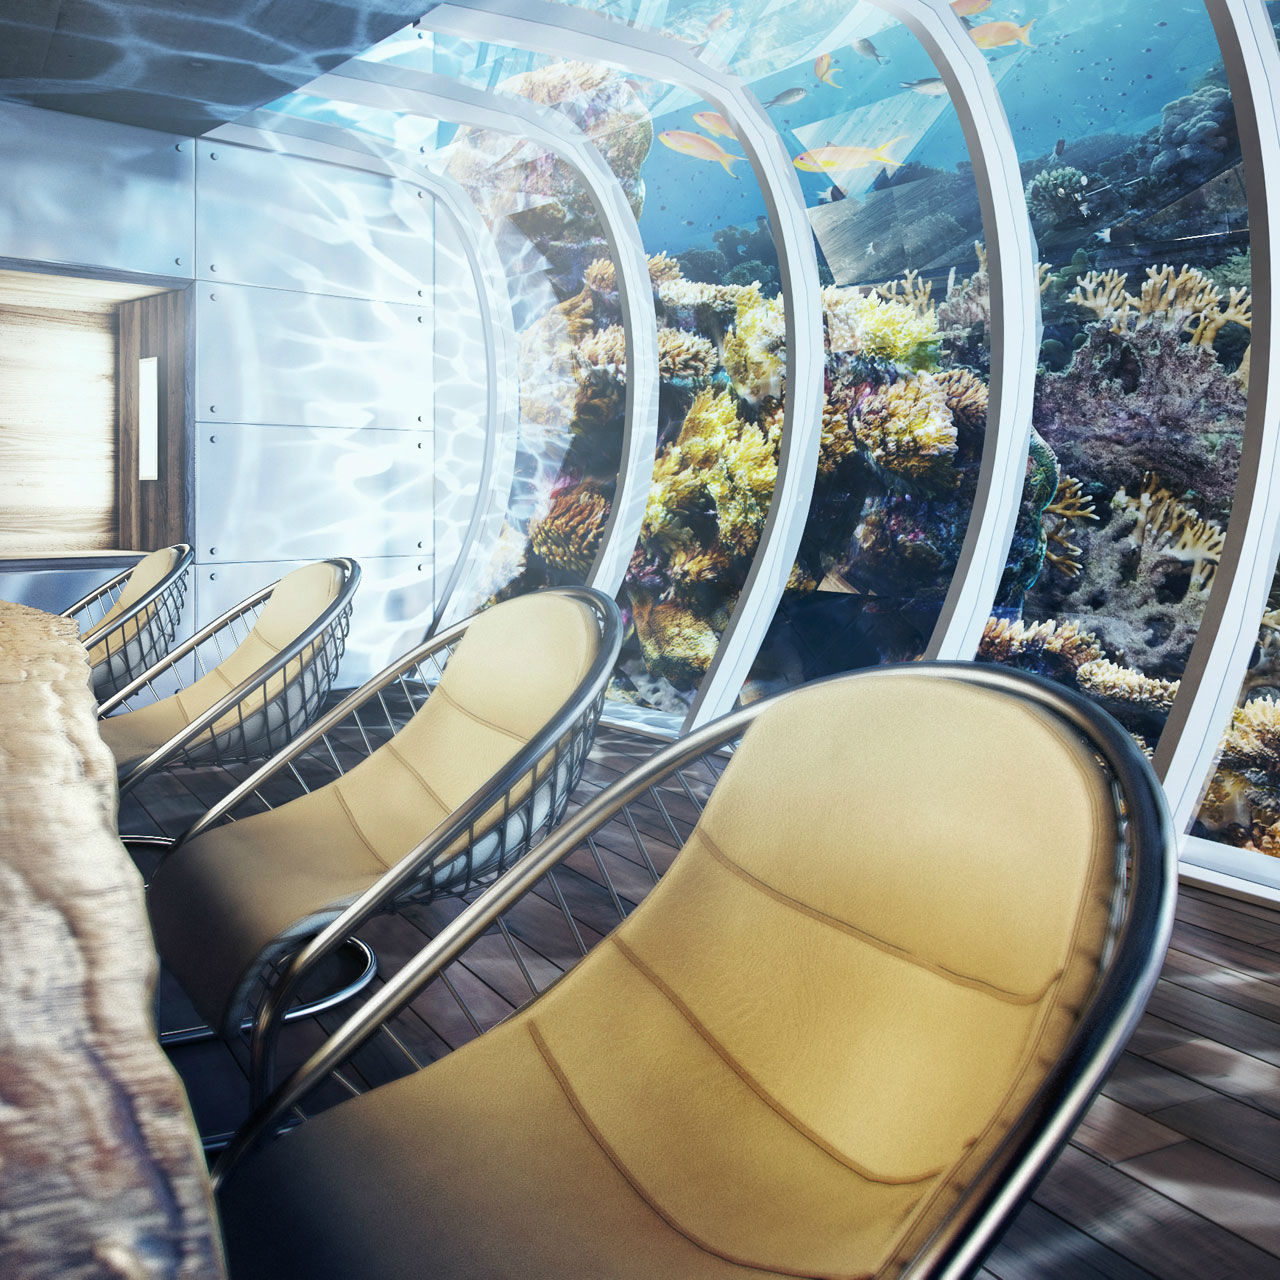 Exclusive Hotel In Dubai: Passion For Luxury : Underwater Hotel Planned In Dubai